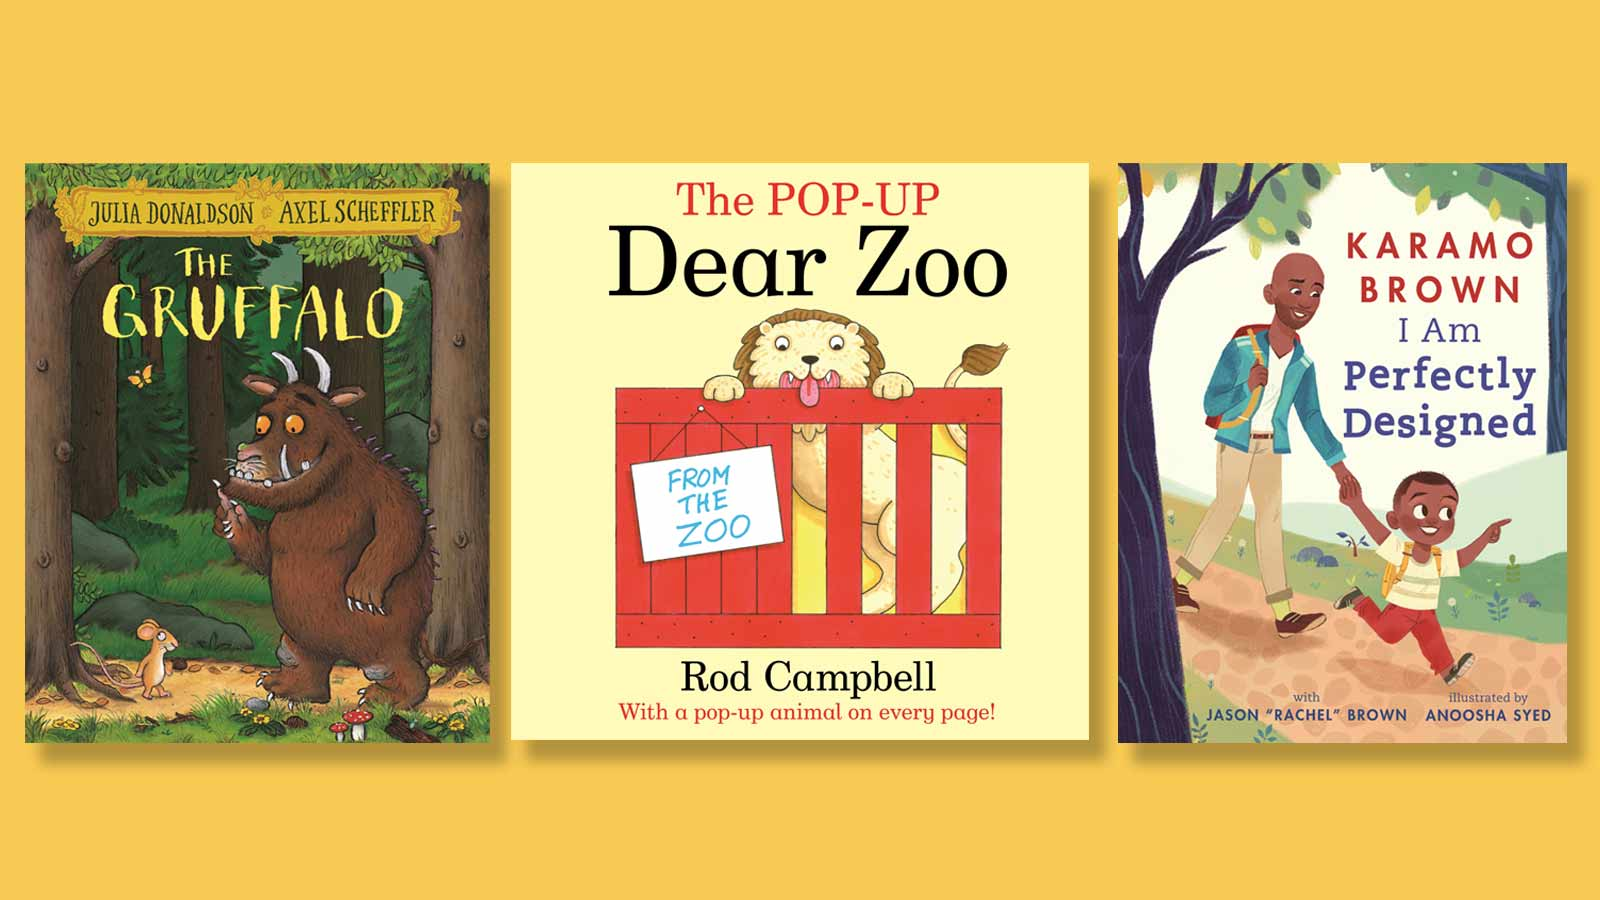 The Gruffalo, The Pop-Up Dear Zoo and I Am Perfectly Designed book covers